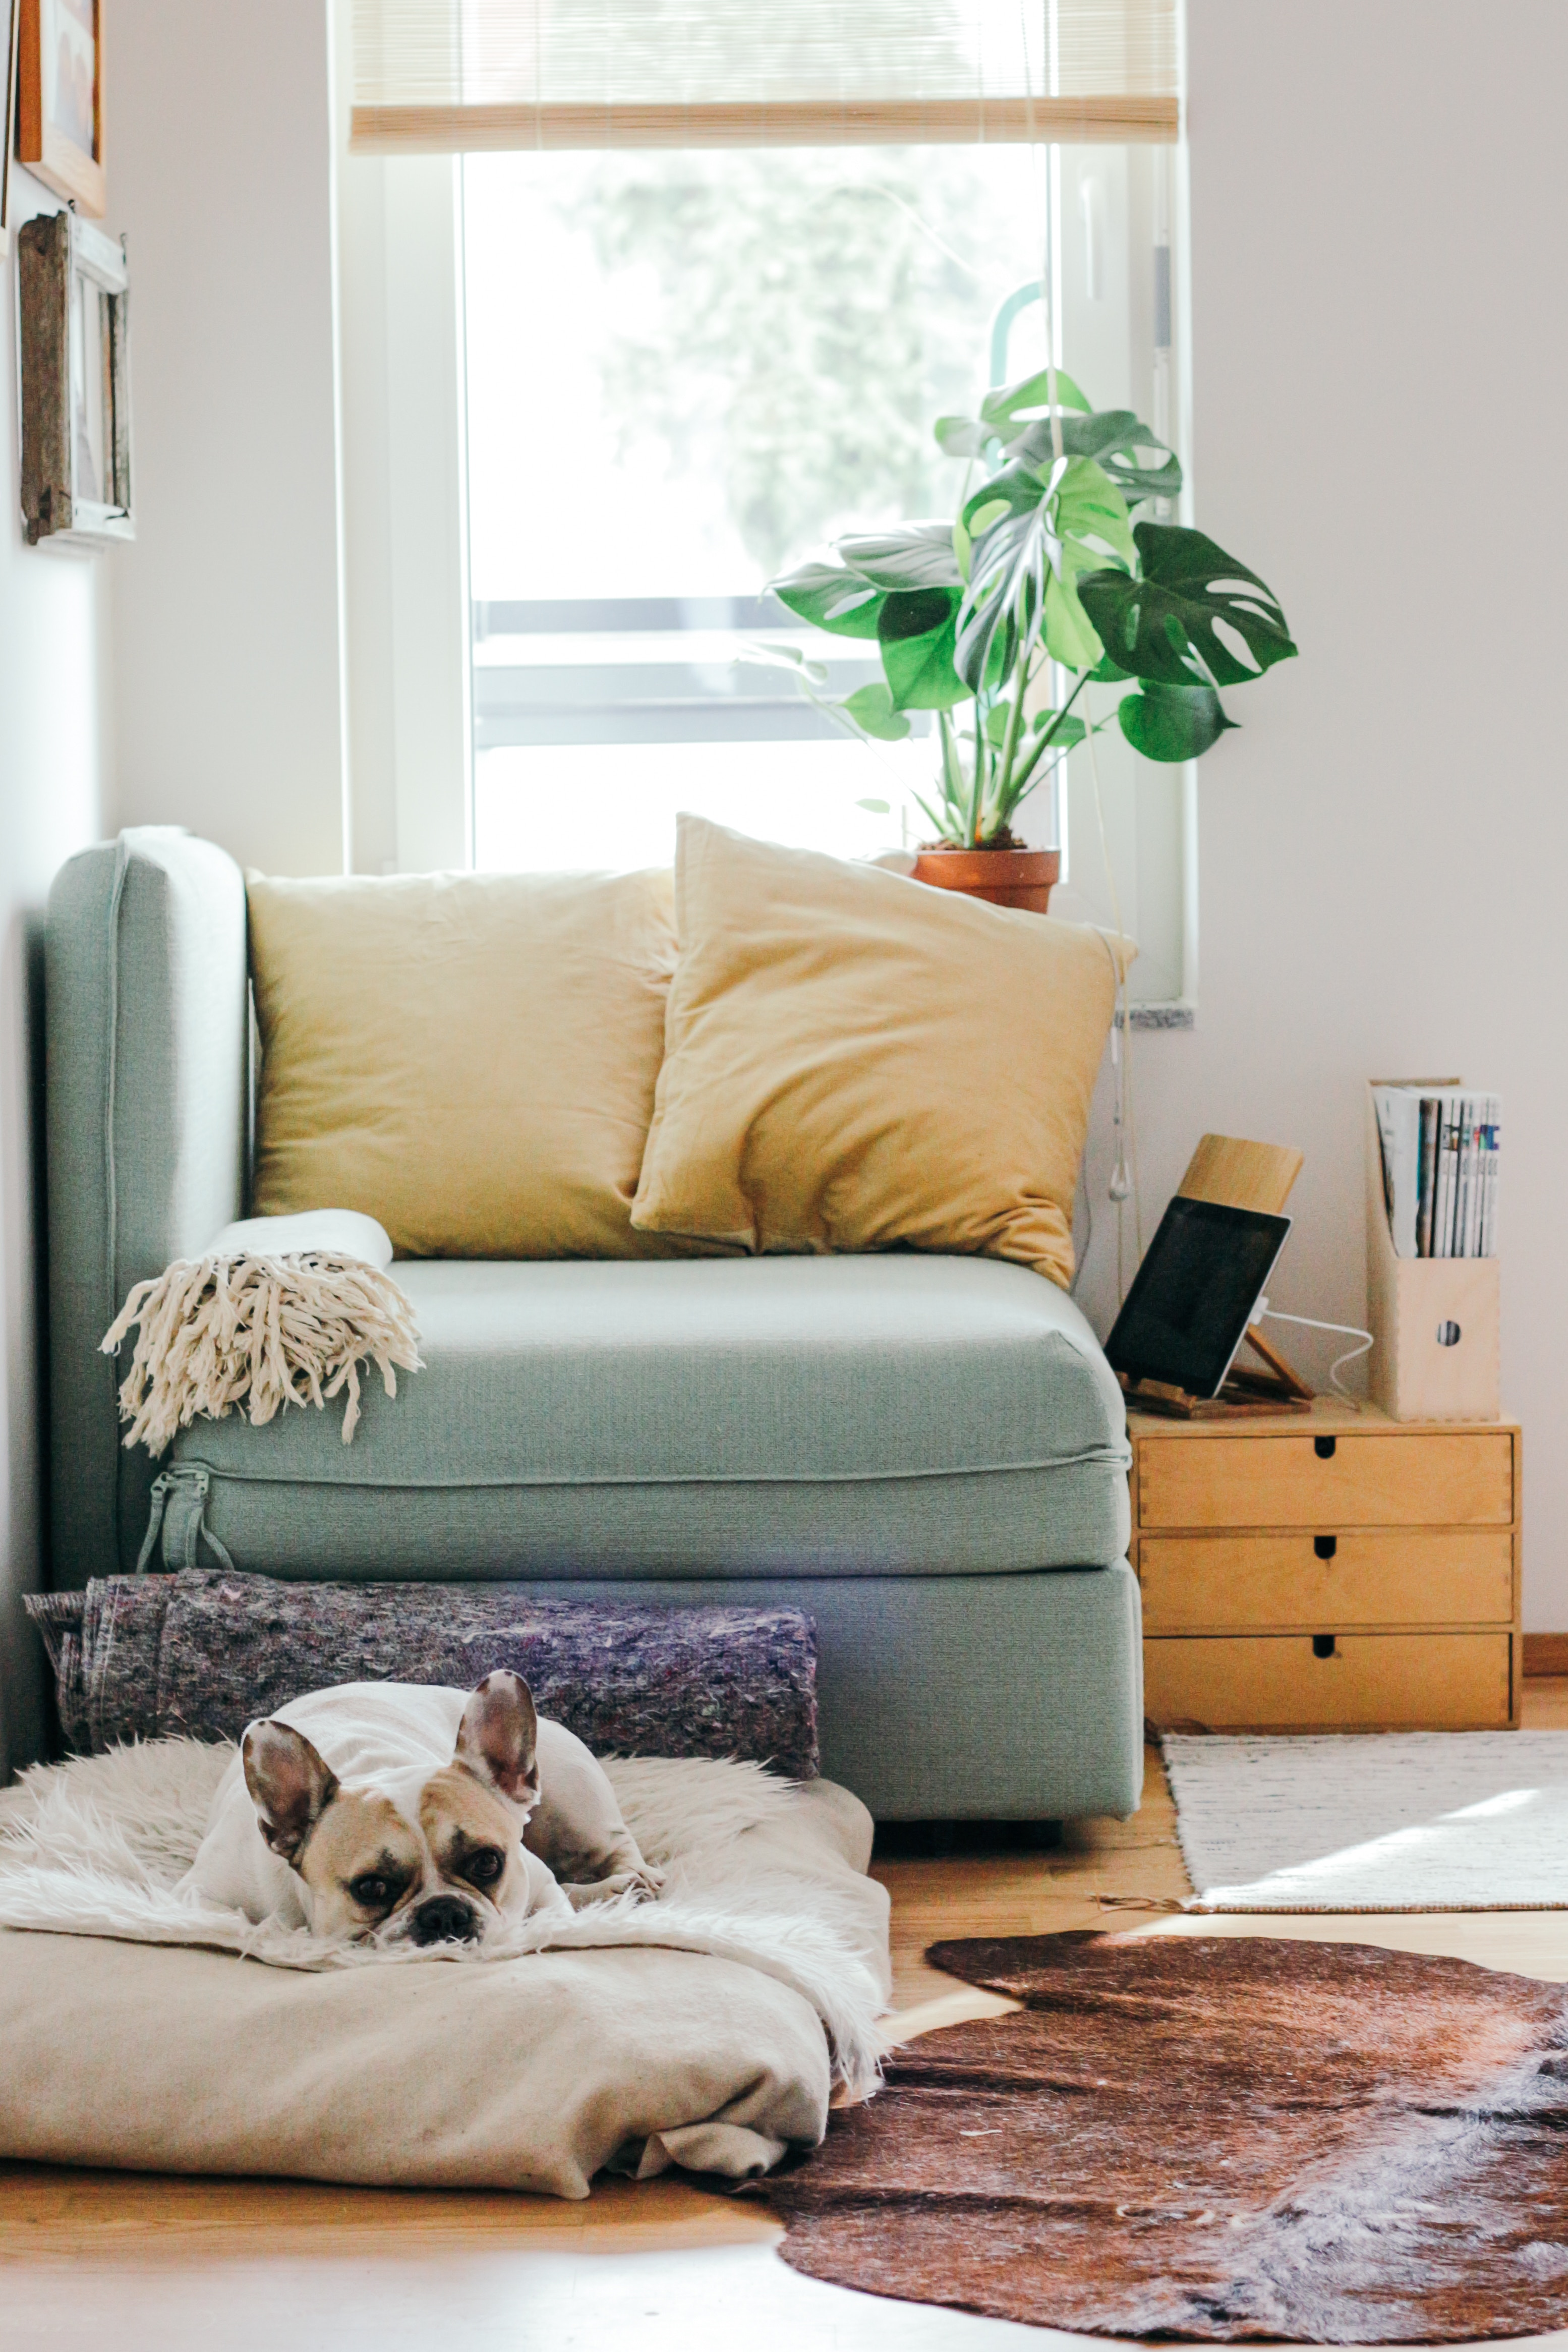 7 Apartment Decorating Ideas to Make Your